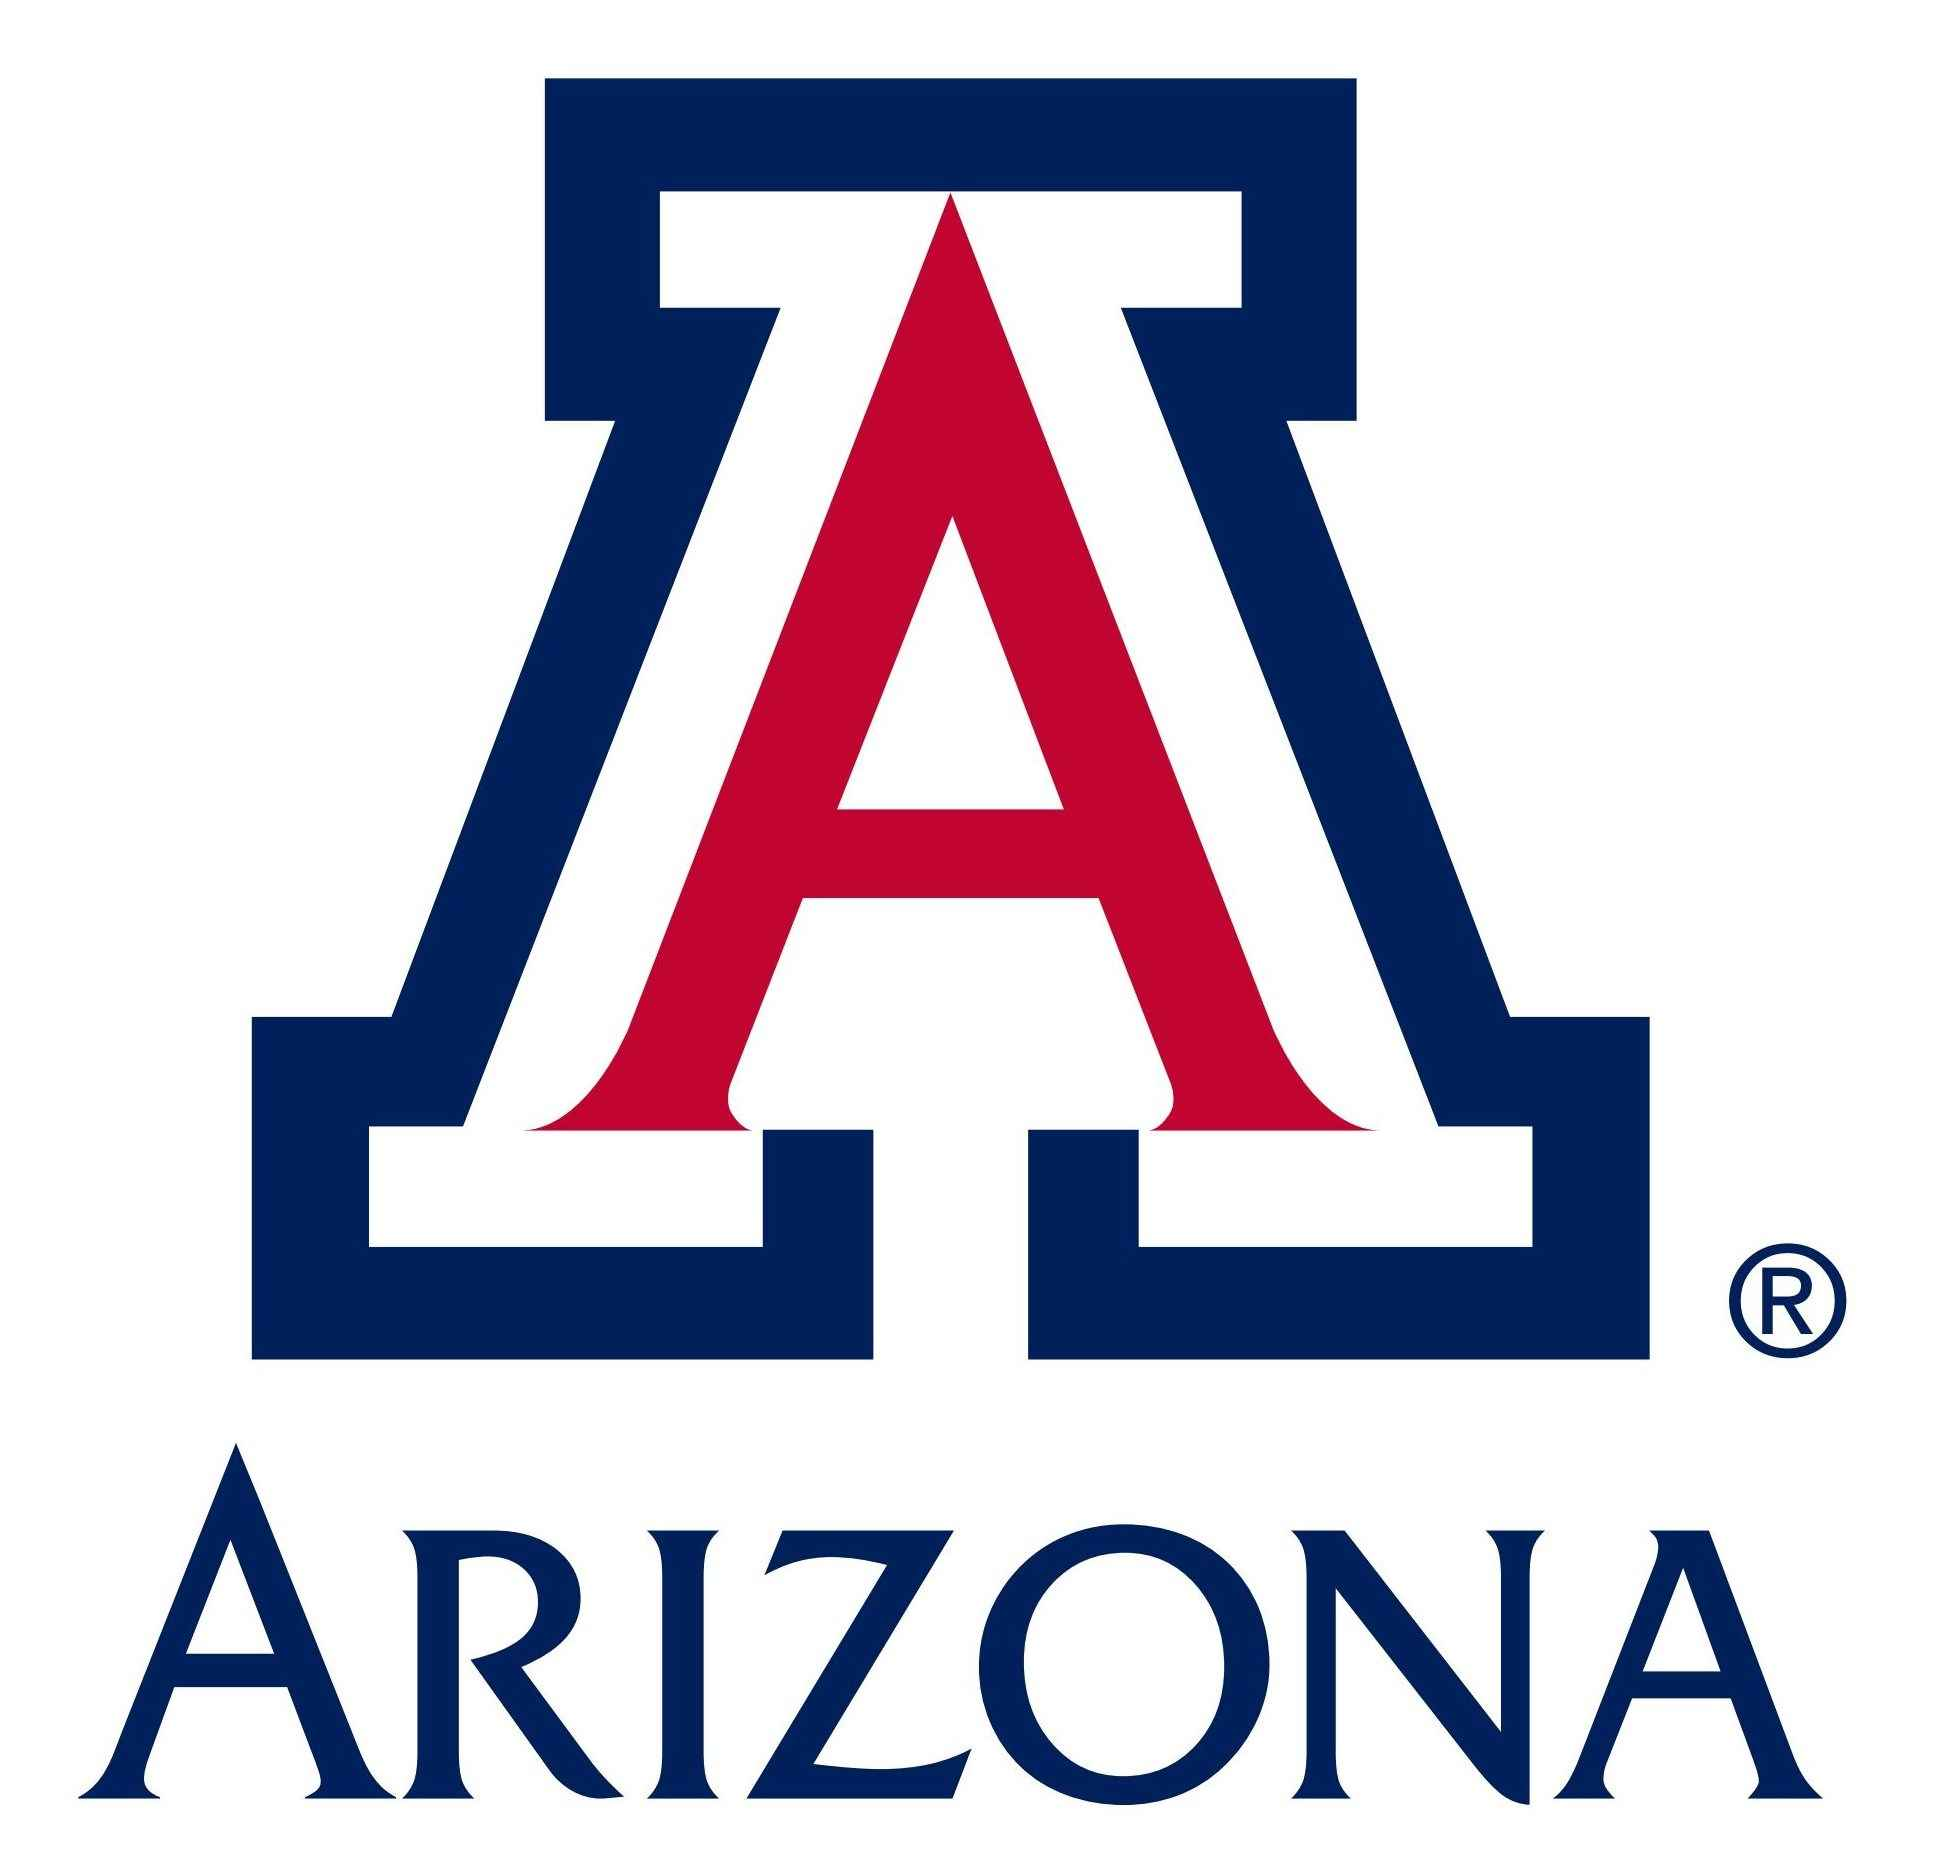 Universityofarizonalogo2 Vector Eps Free Download, Logo. Tiered Side Table. Built In Wall Desk Units. Floating Wall Desk. Wooden Writing Desk. Pink Coffee Table. It Help Desk Jobs. Card Table Set. Round Glass Top Dining Table